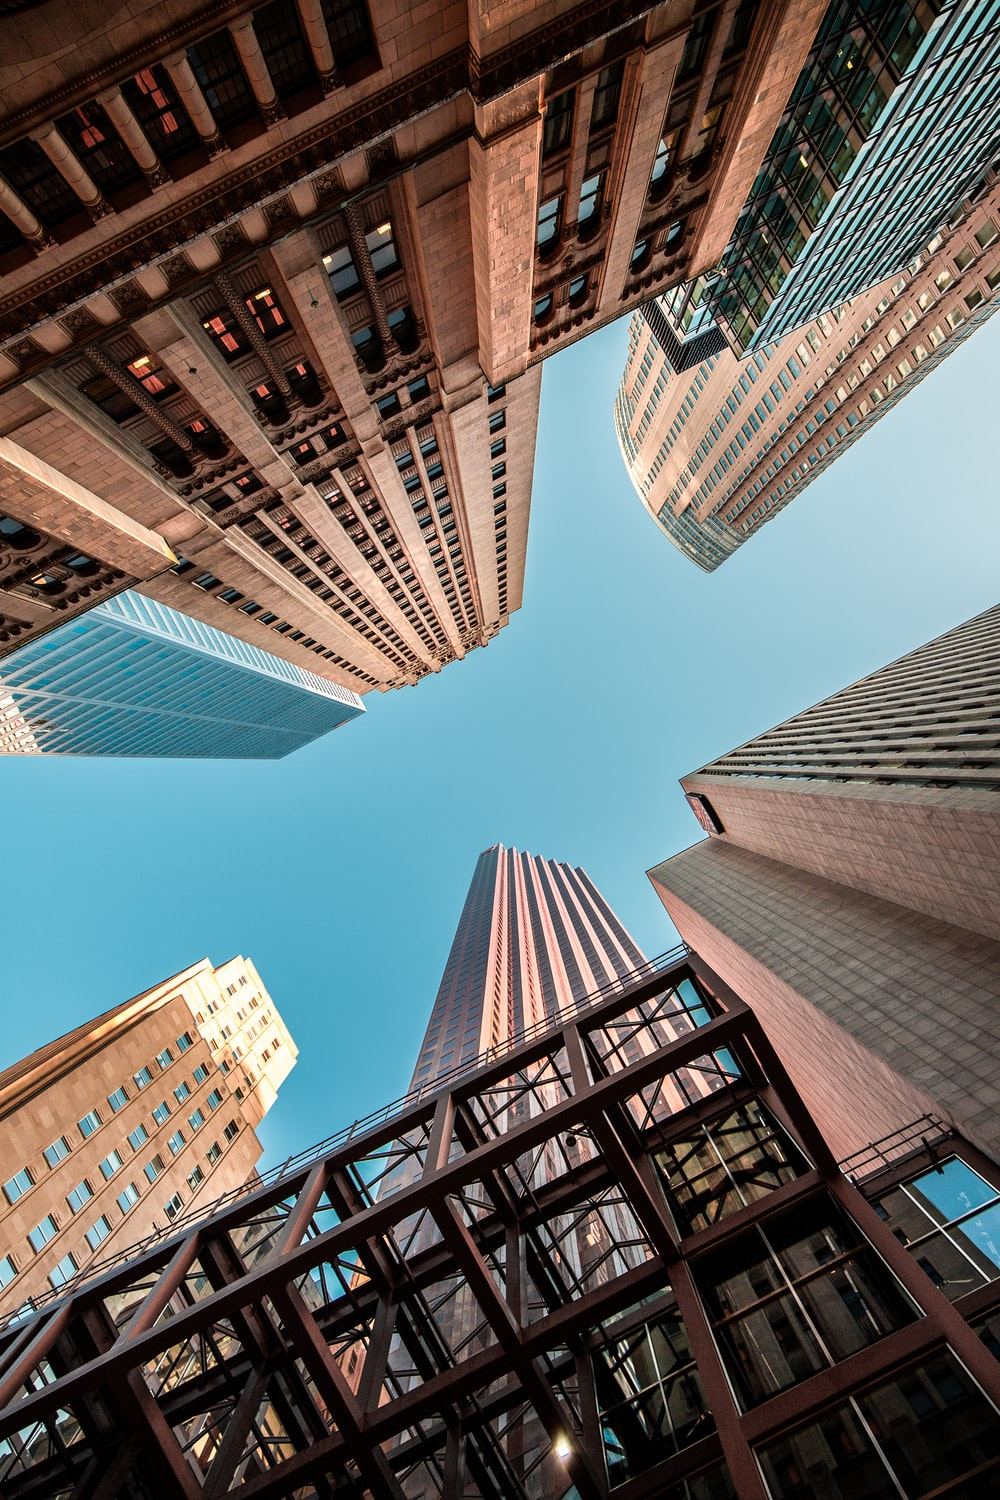 wormseye view of high-rise buildings under blue sky